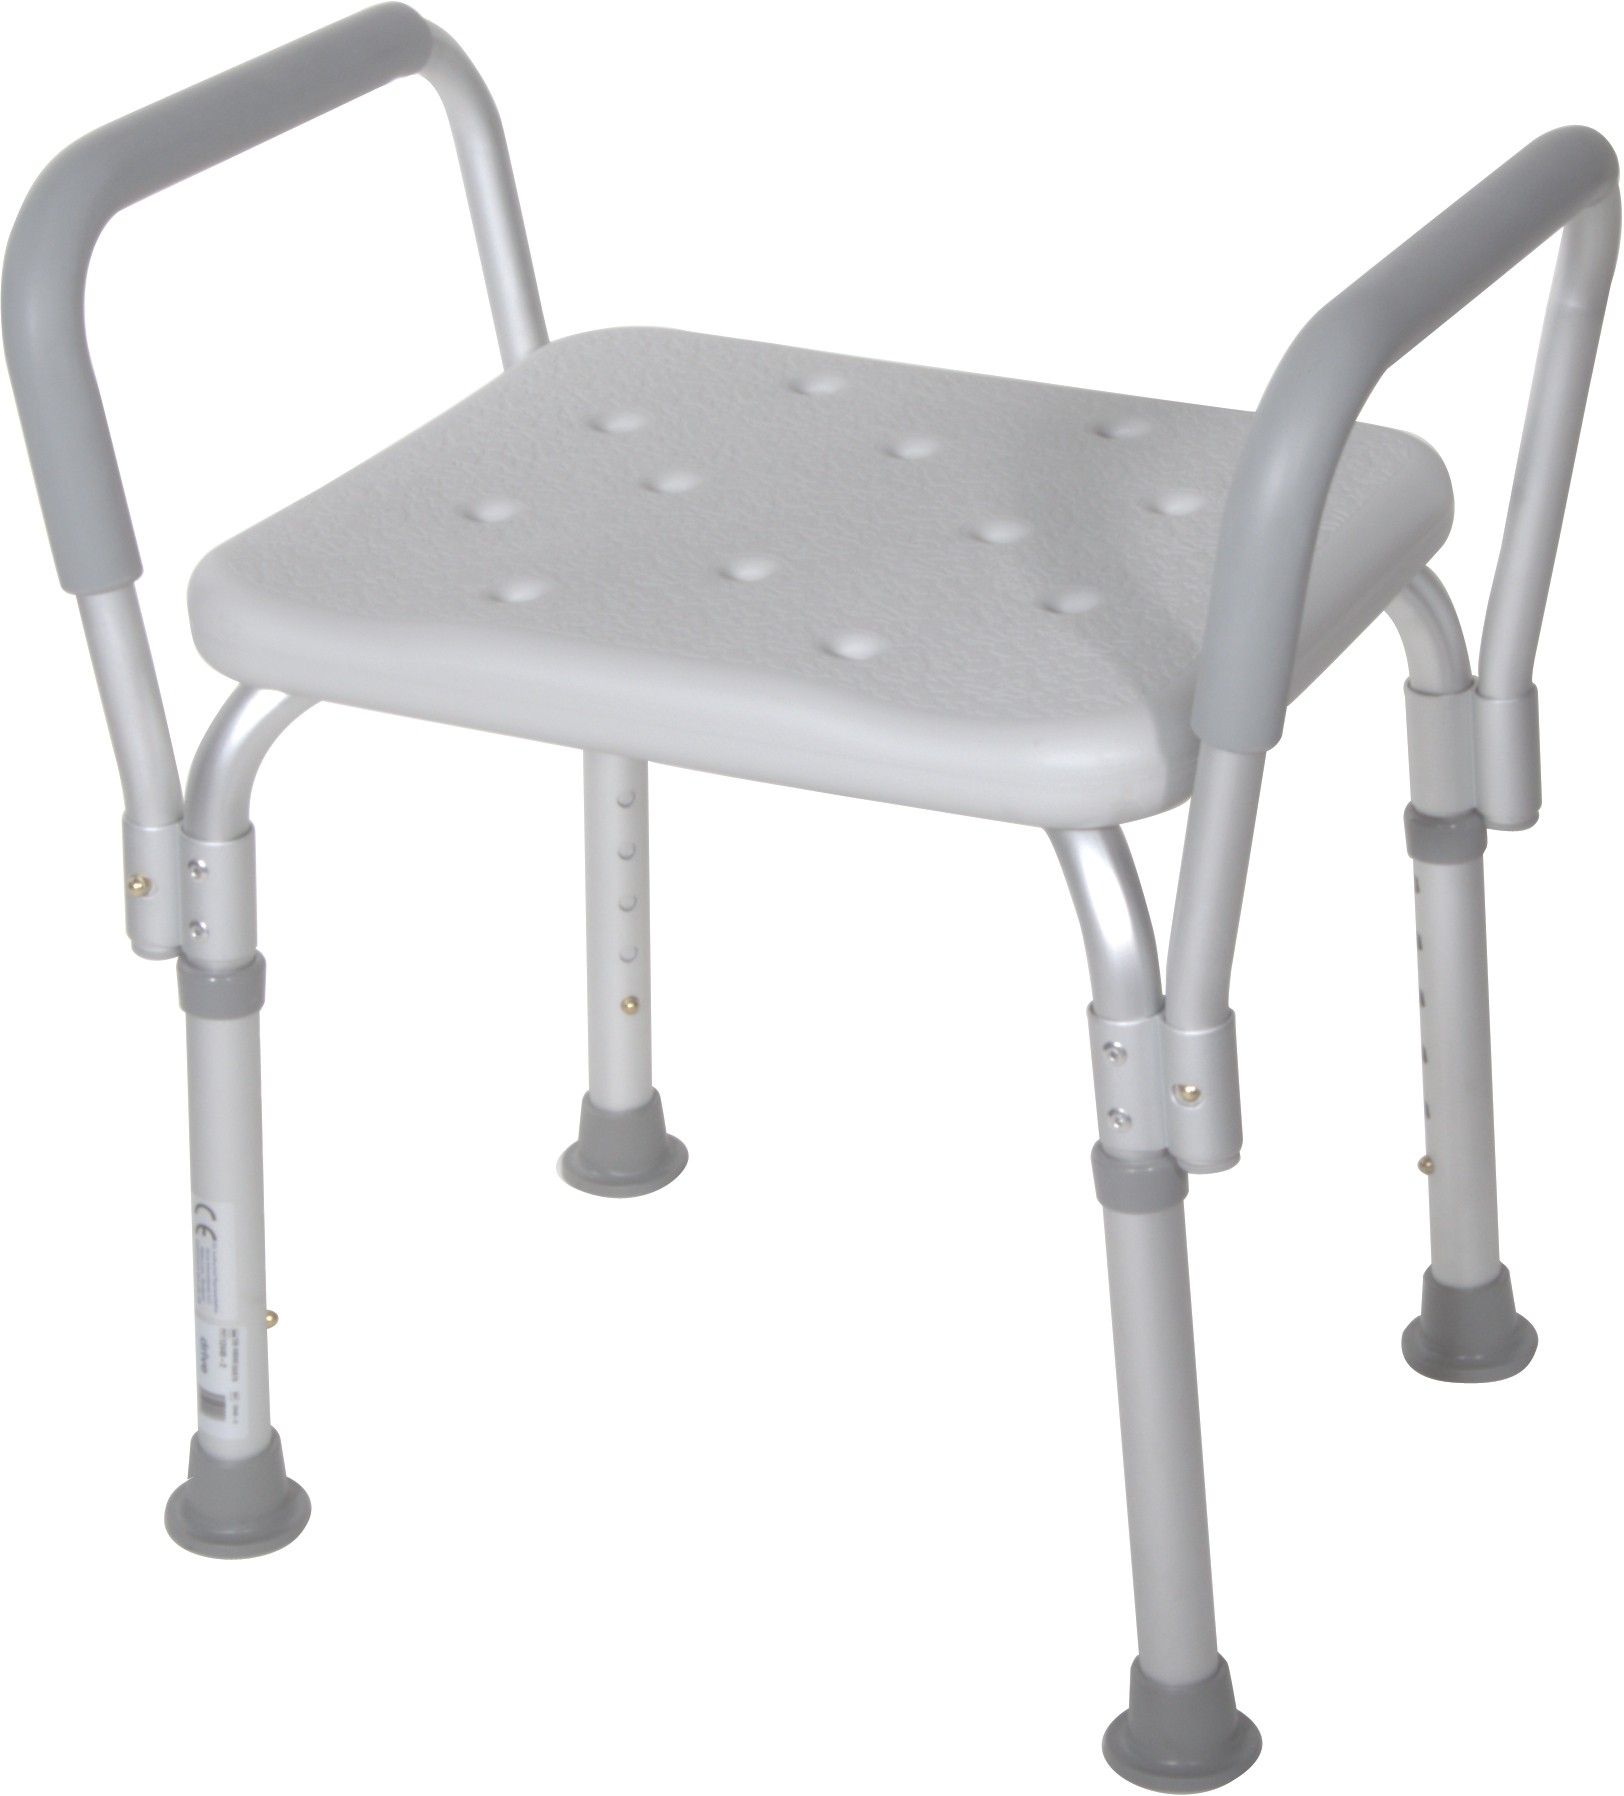 microban transfer ehite p medline safety bath the stools with shower bench chairs